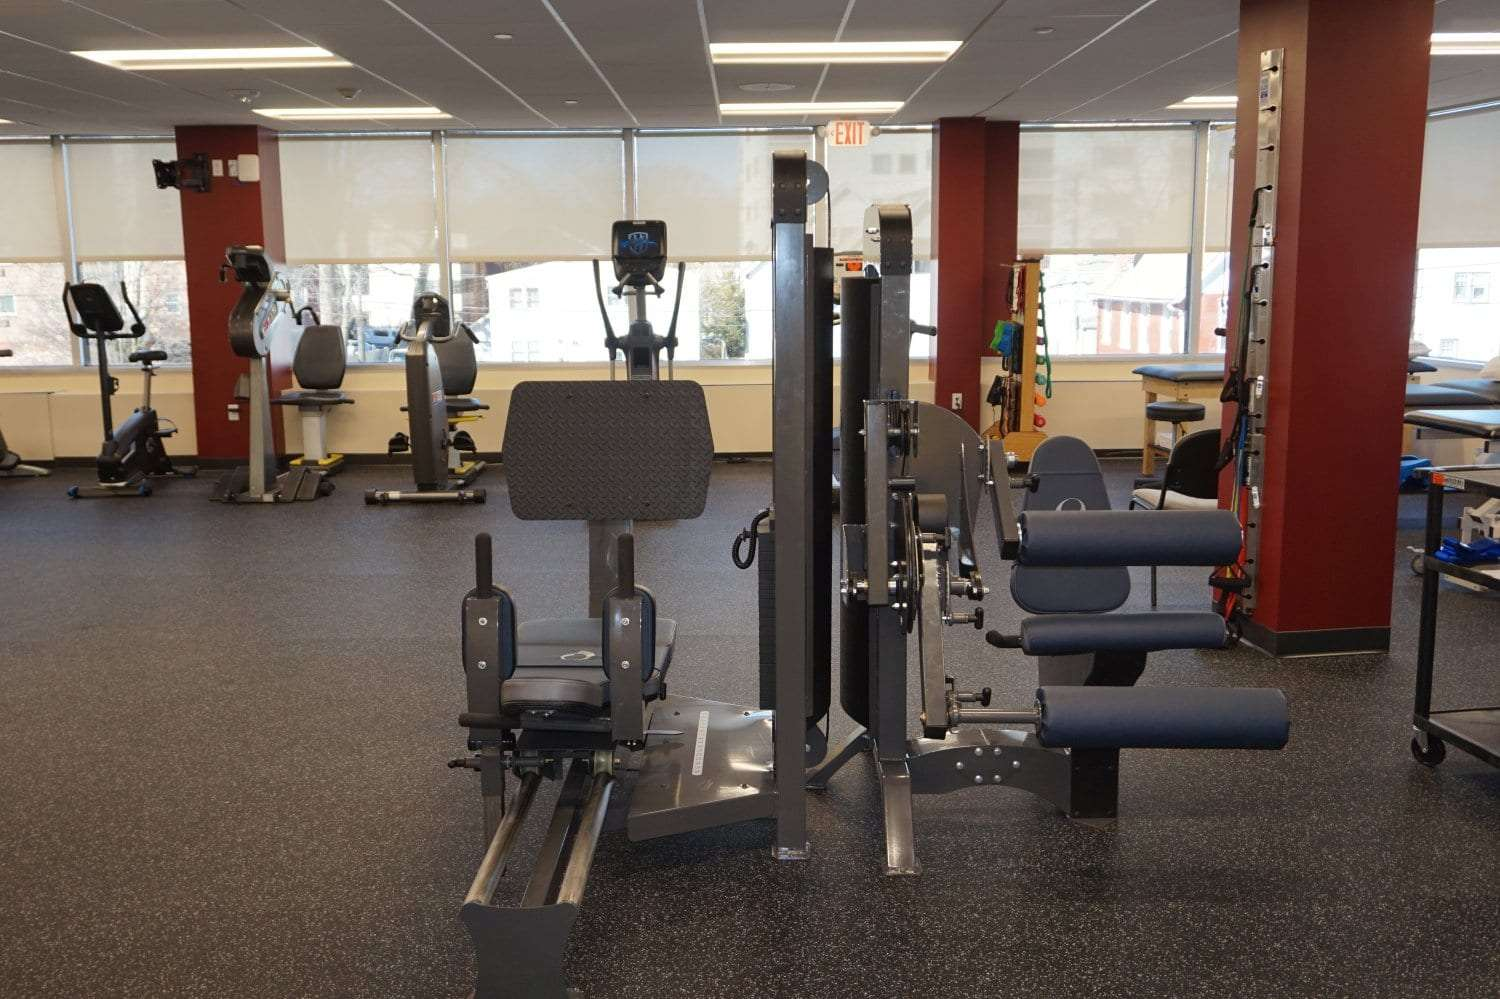 Here is another view of the equipment used at our physical therapy clinic in Stamford, Connecticut.